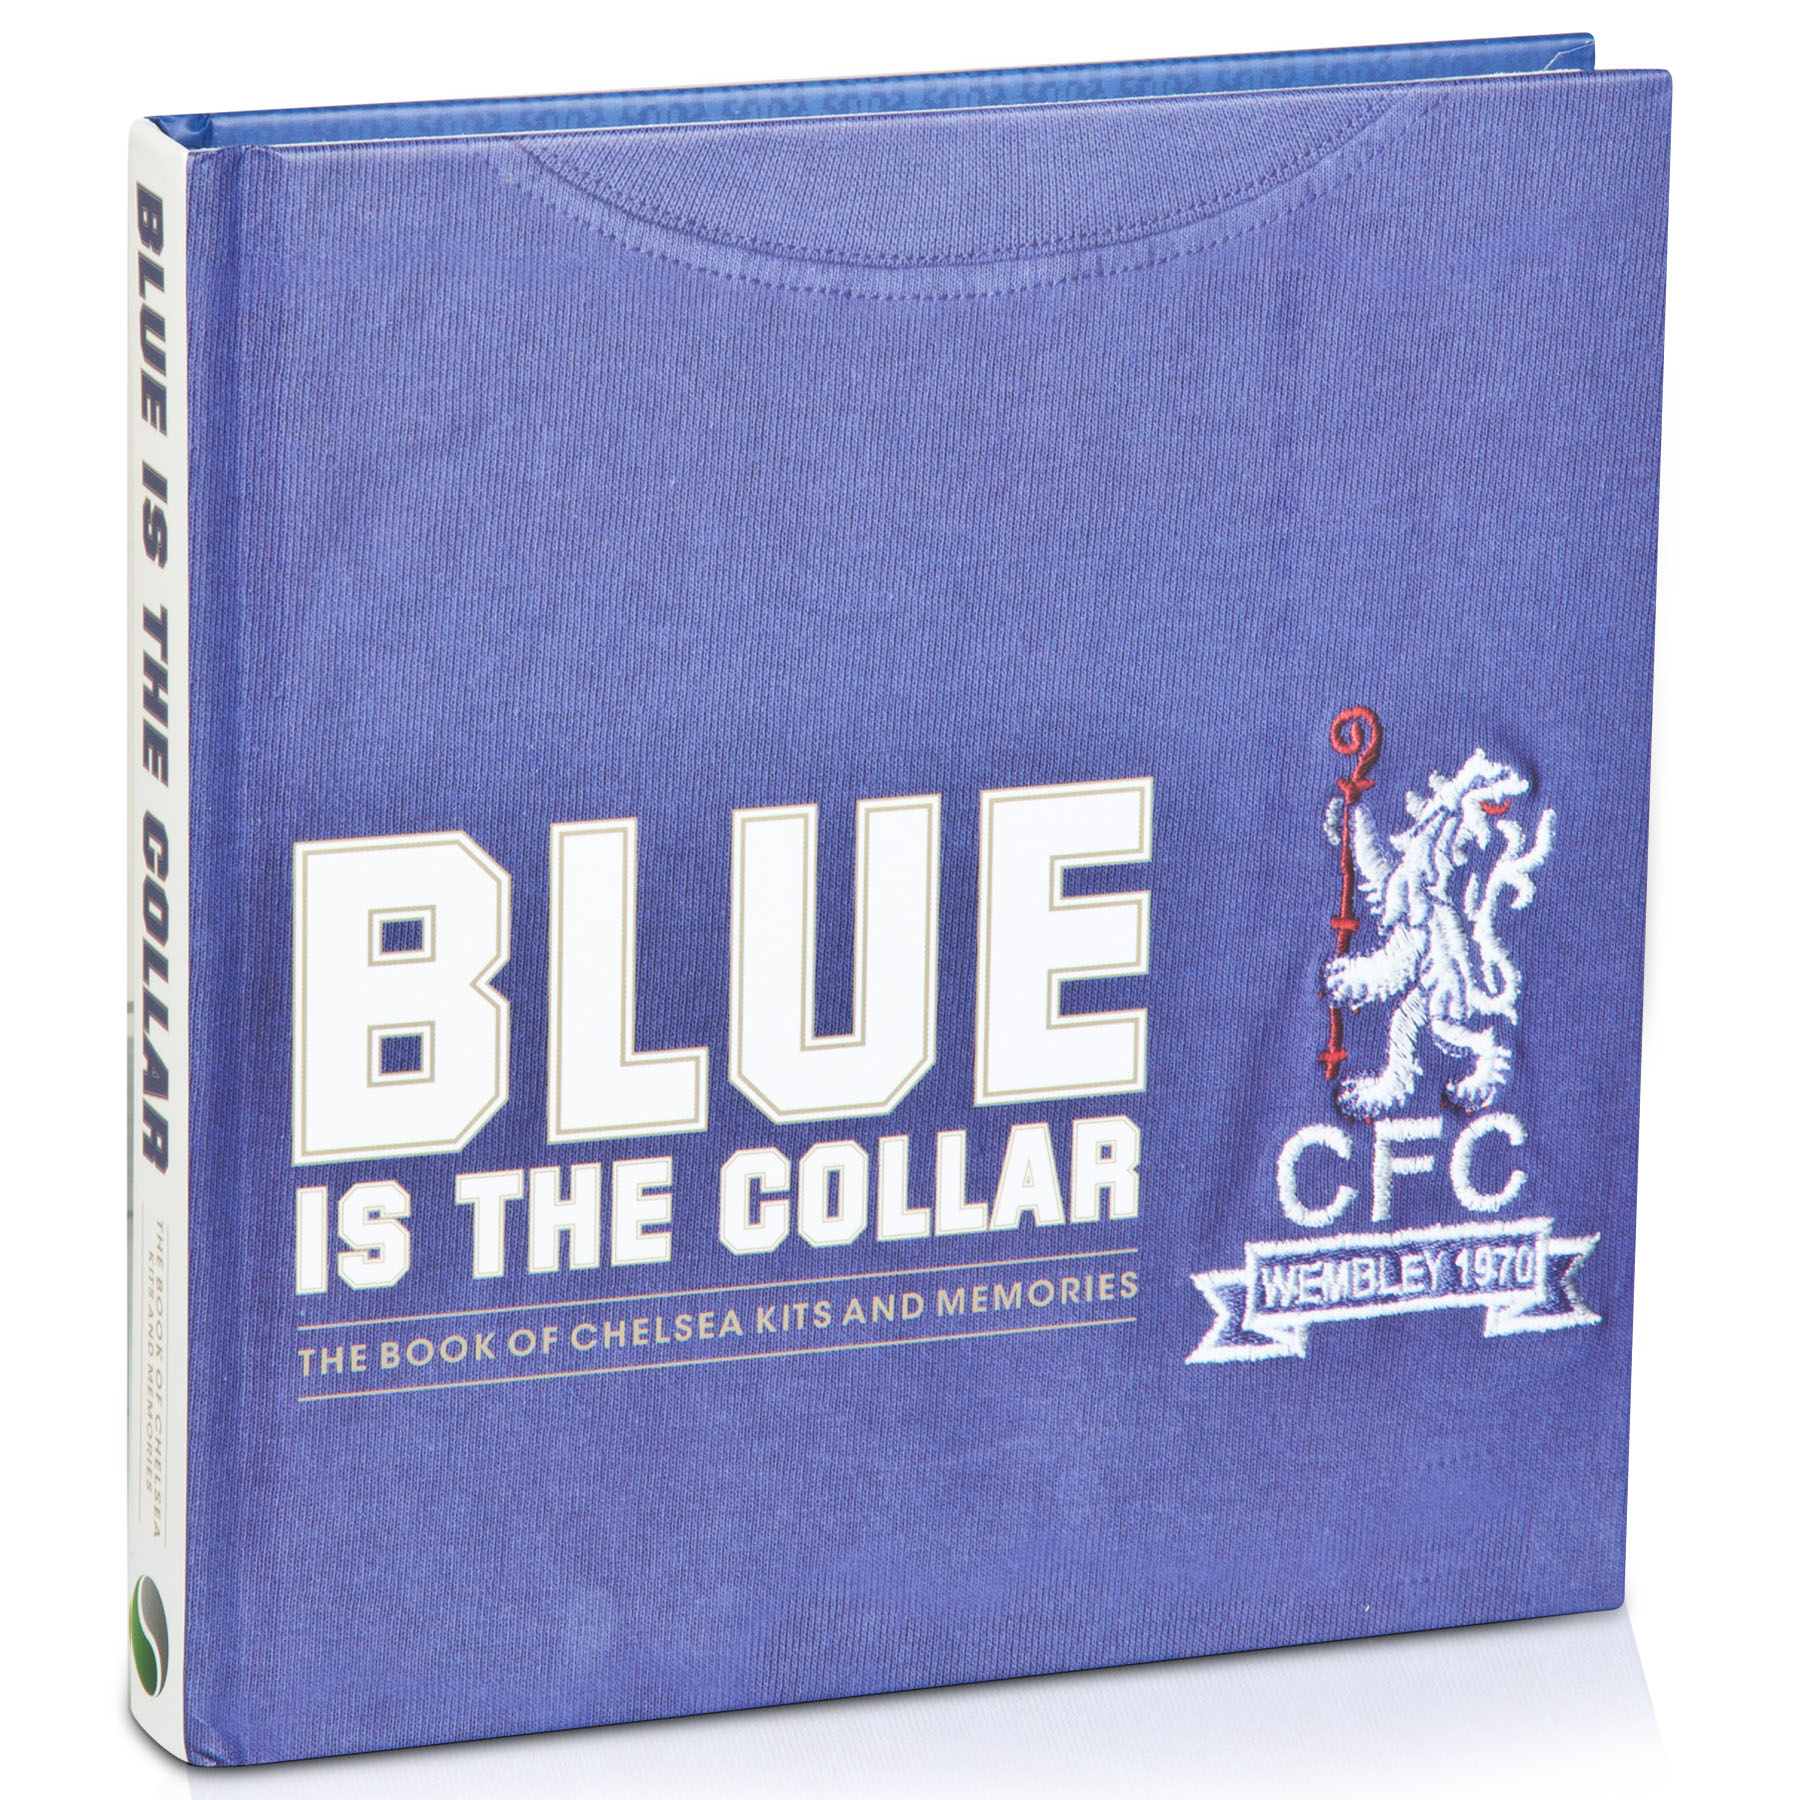 Chelsea Blue Is The Collar - Hardback Book